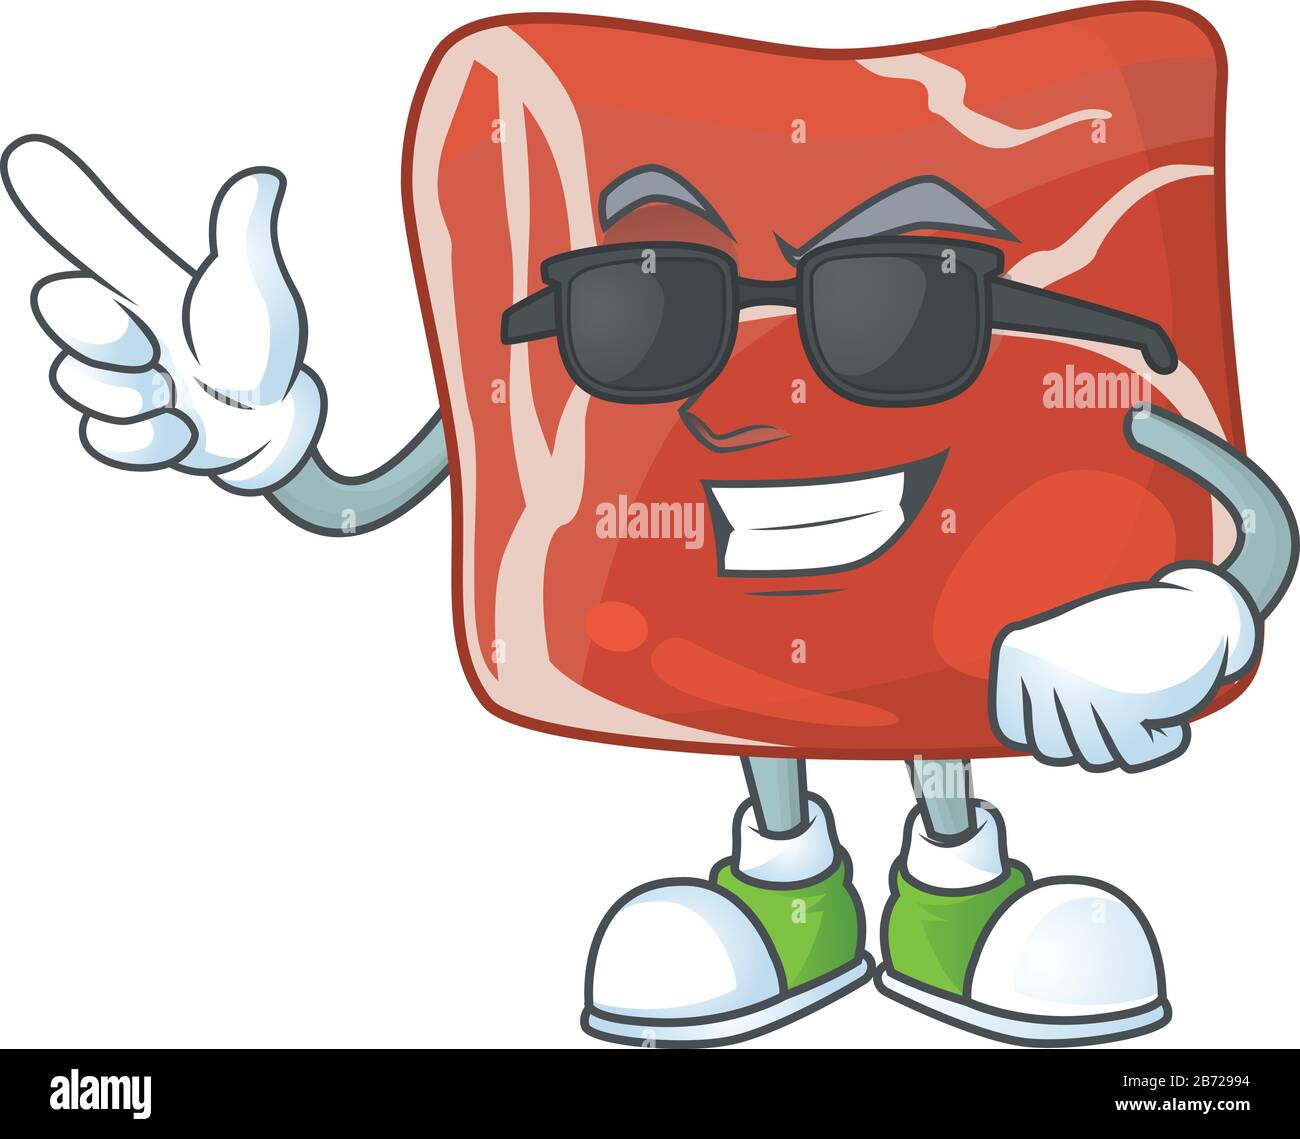 cute beef cartoon character design style with black glasses stock vector image art alamy https www alamy com cute beef cartoon character design style with black glasses image348561168 html